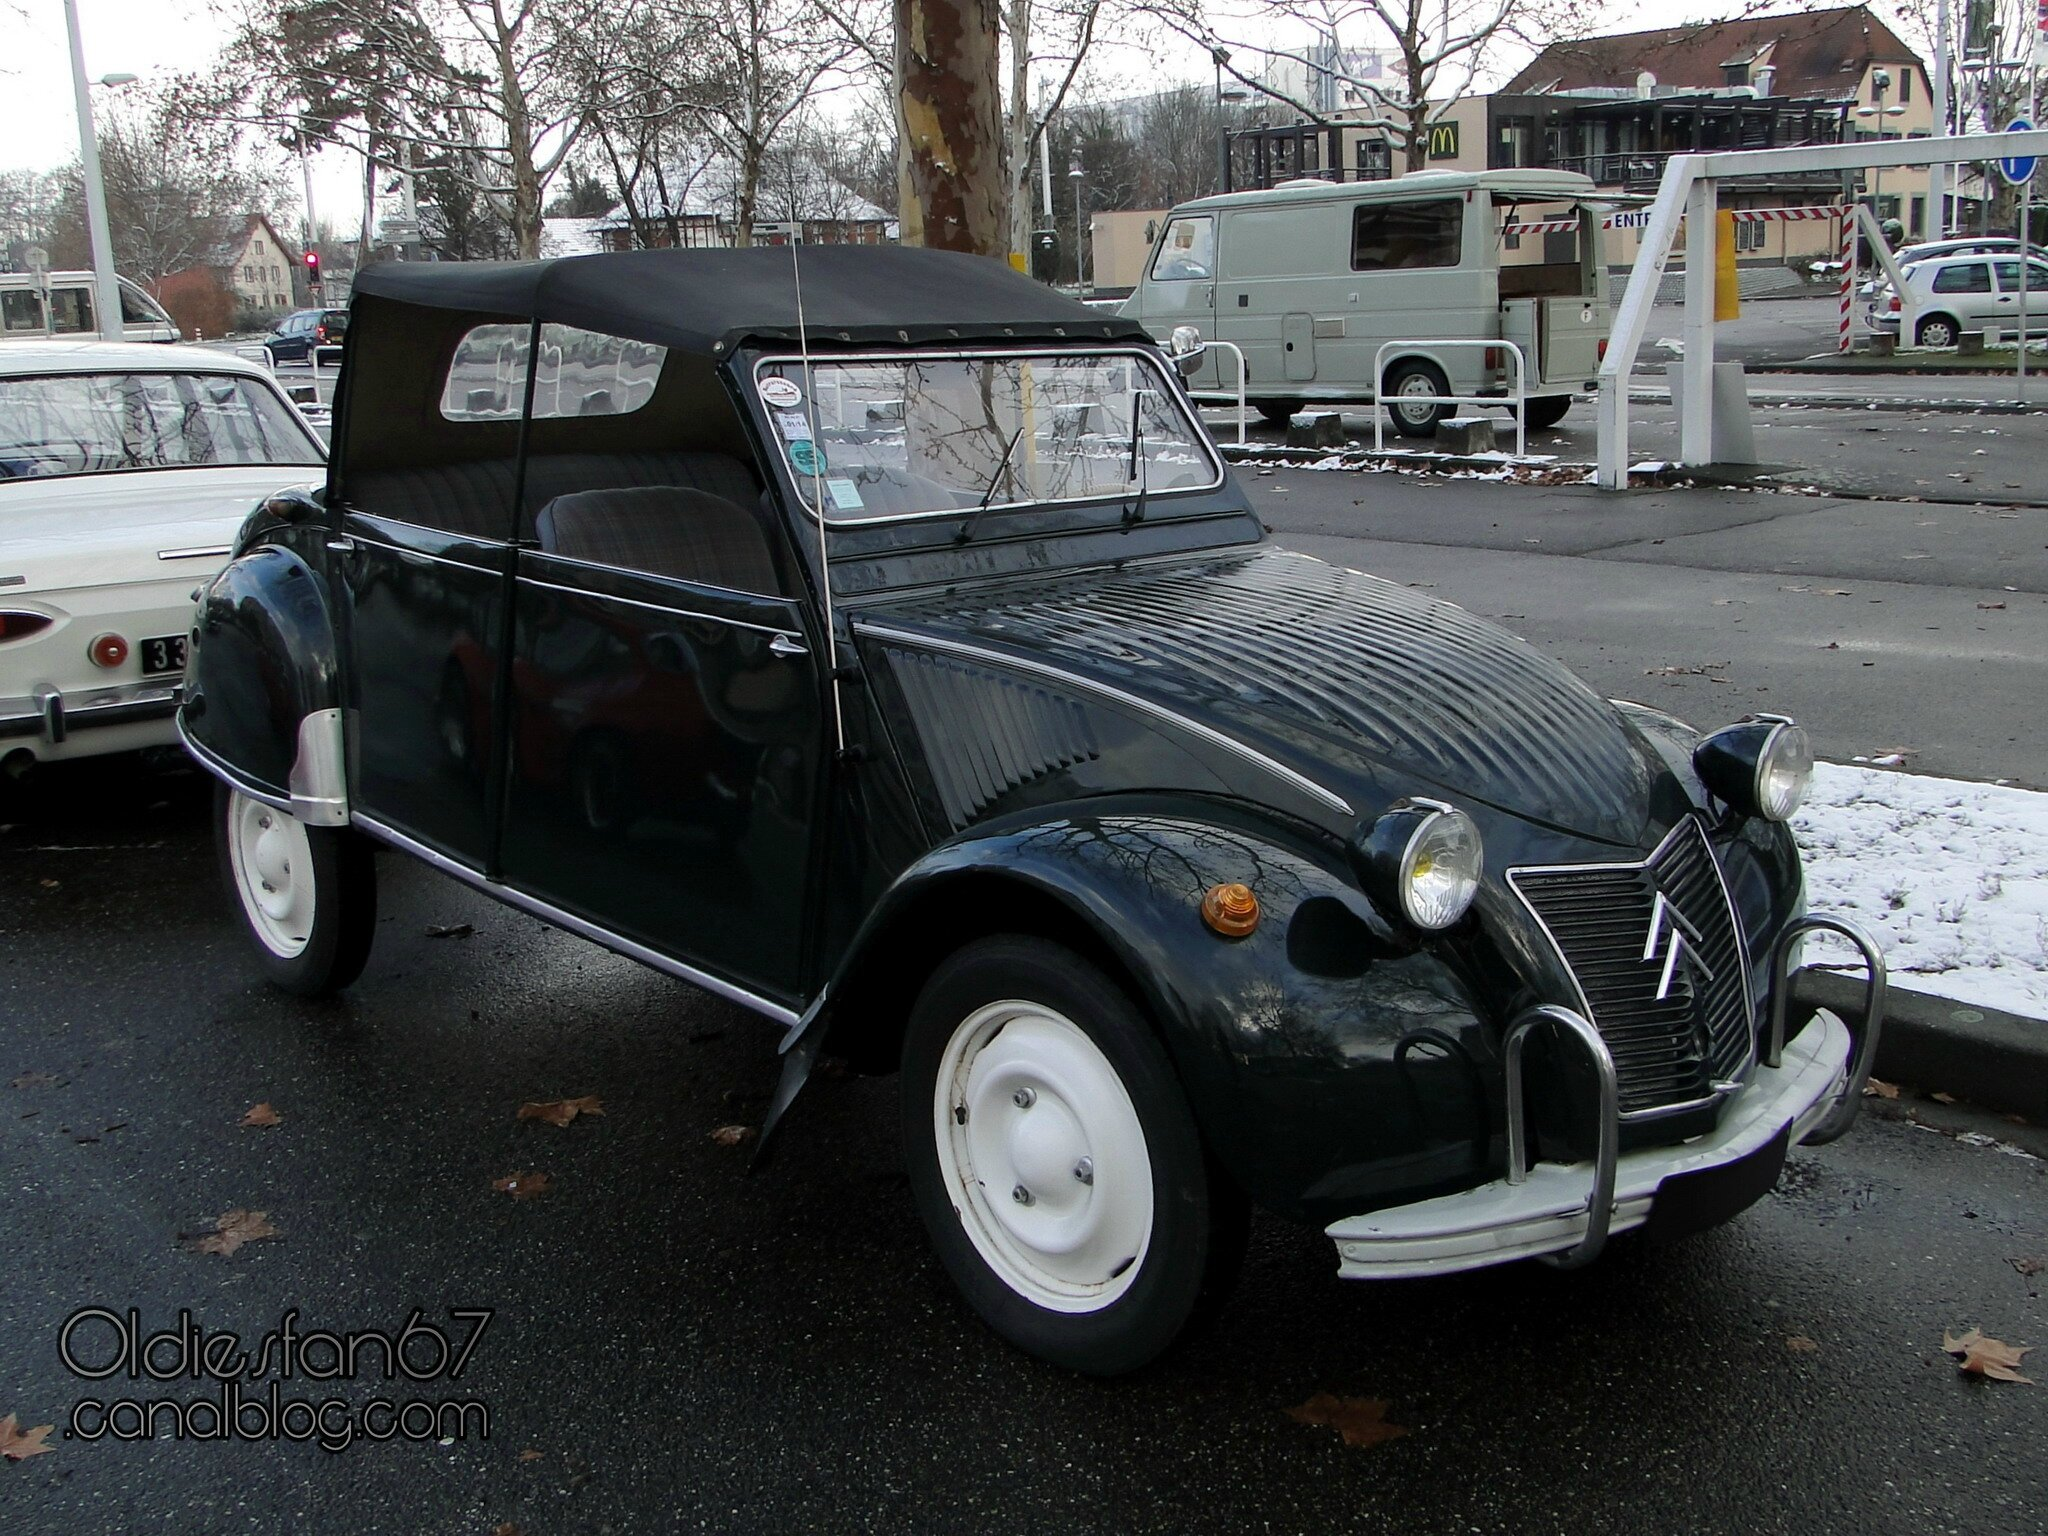 citro n 2 cv cabriolet 4 portes oldiesfan67 mon blog auto. Black Bedroom Furniture Sets. Home Design Ideas